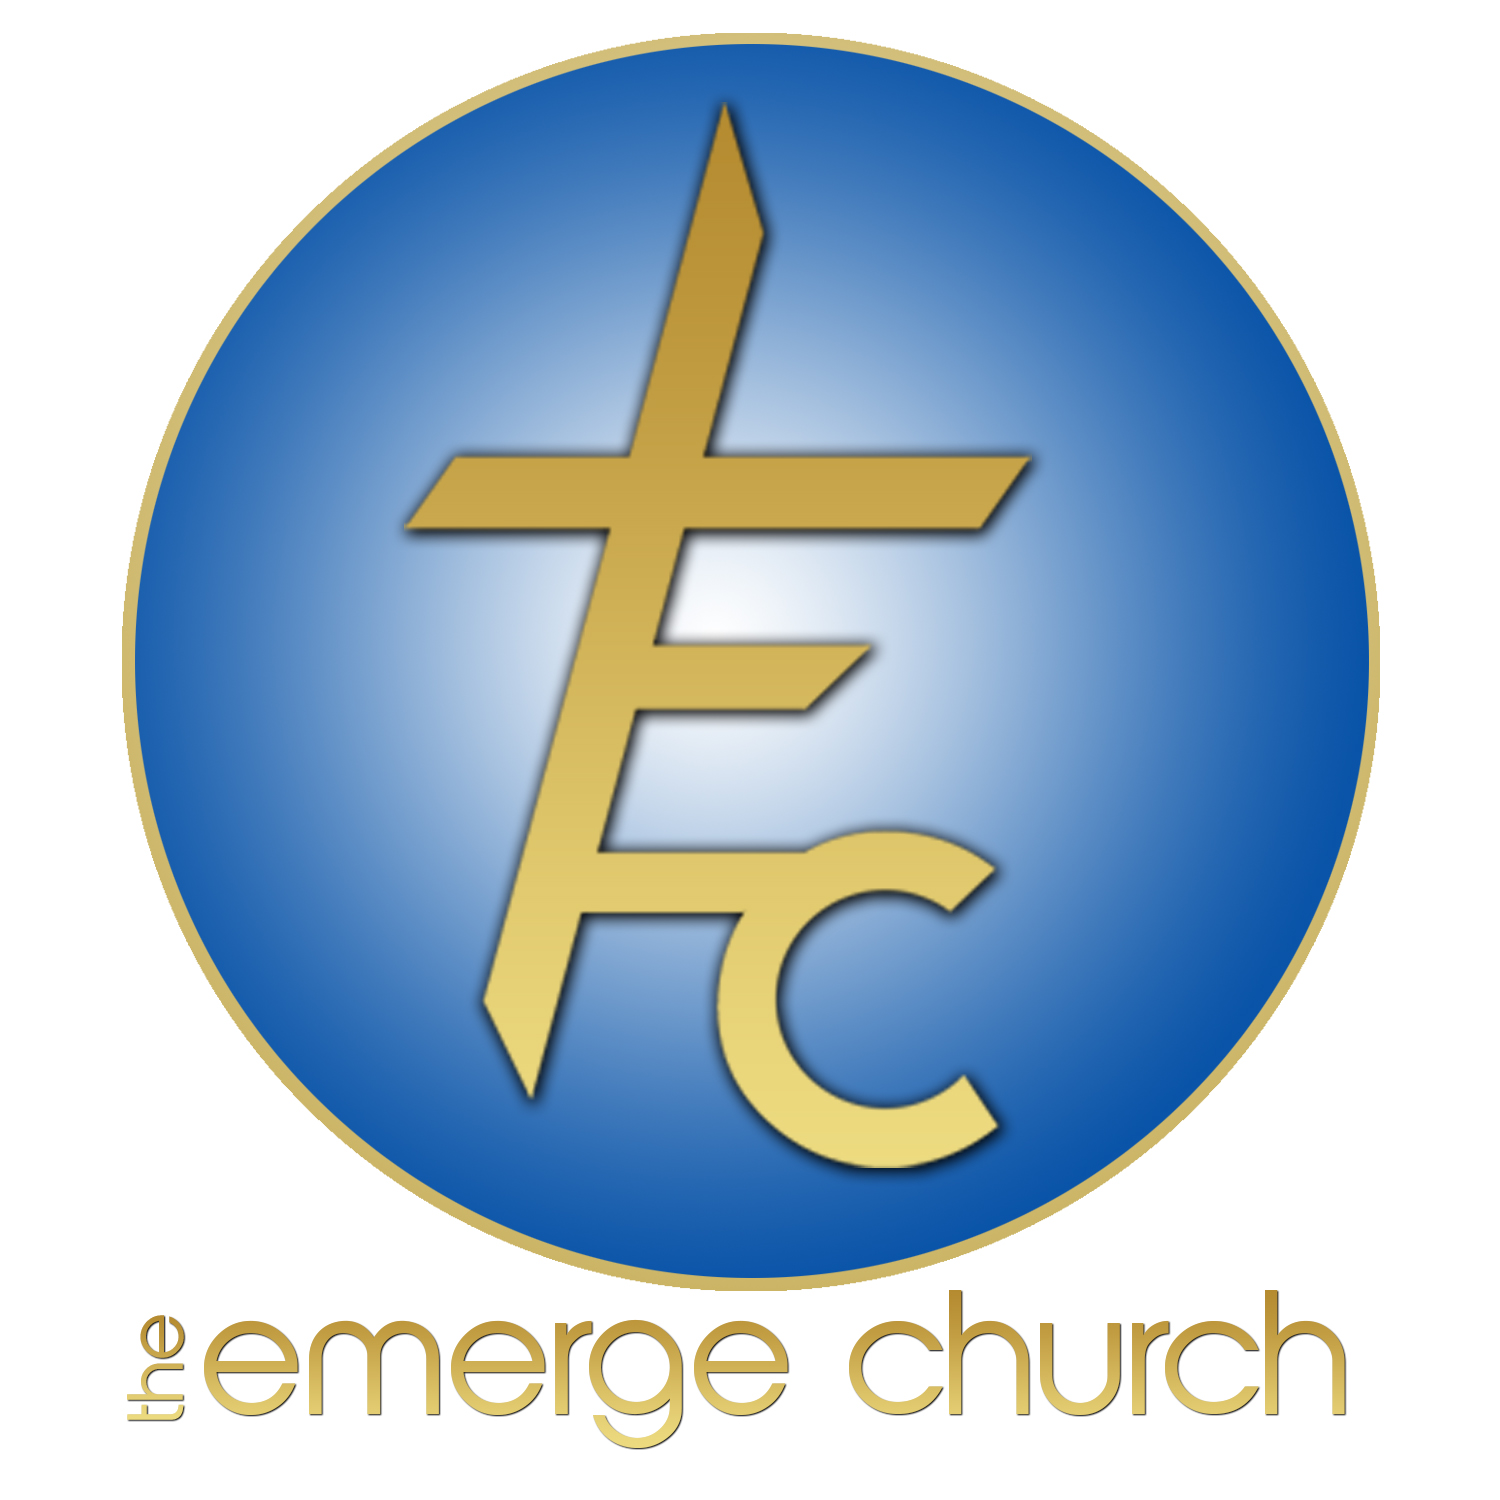 the emerge church brand